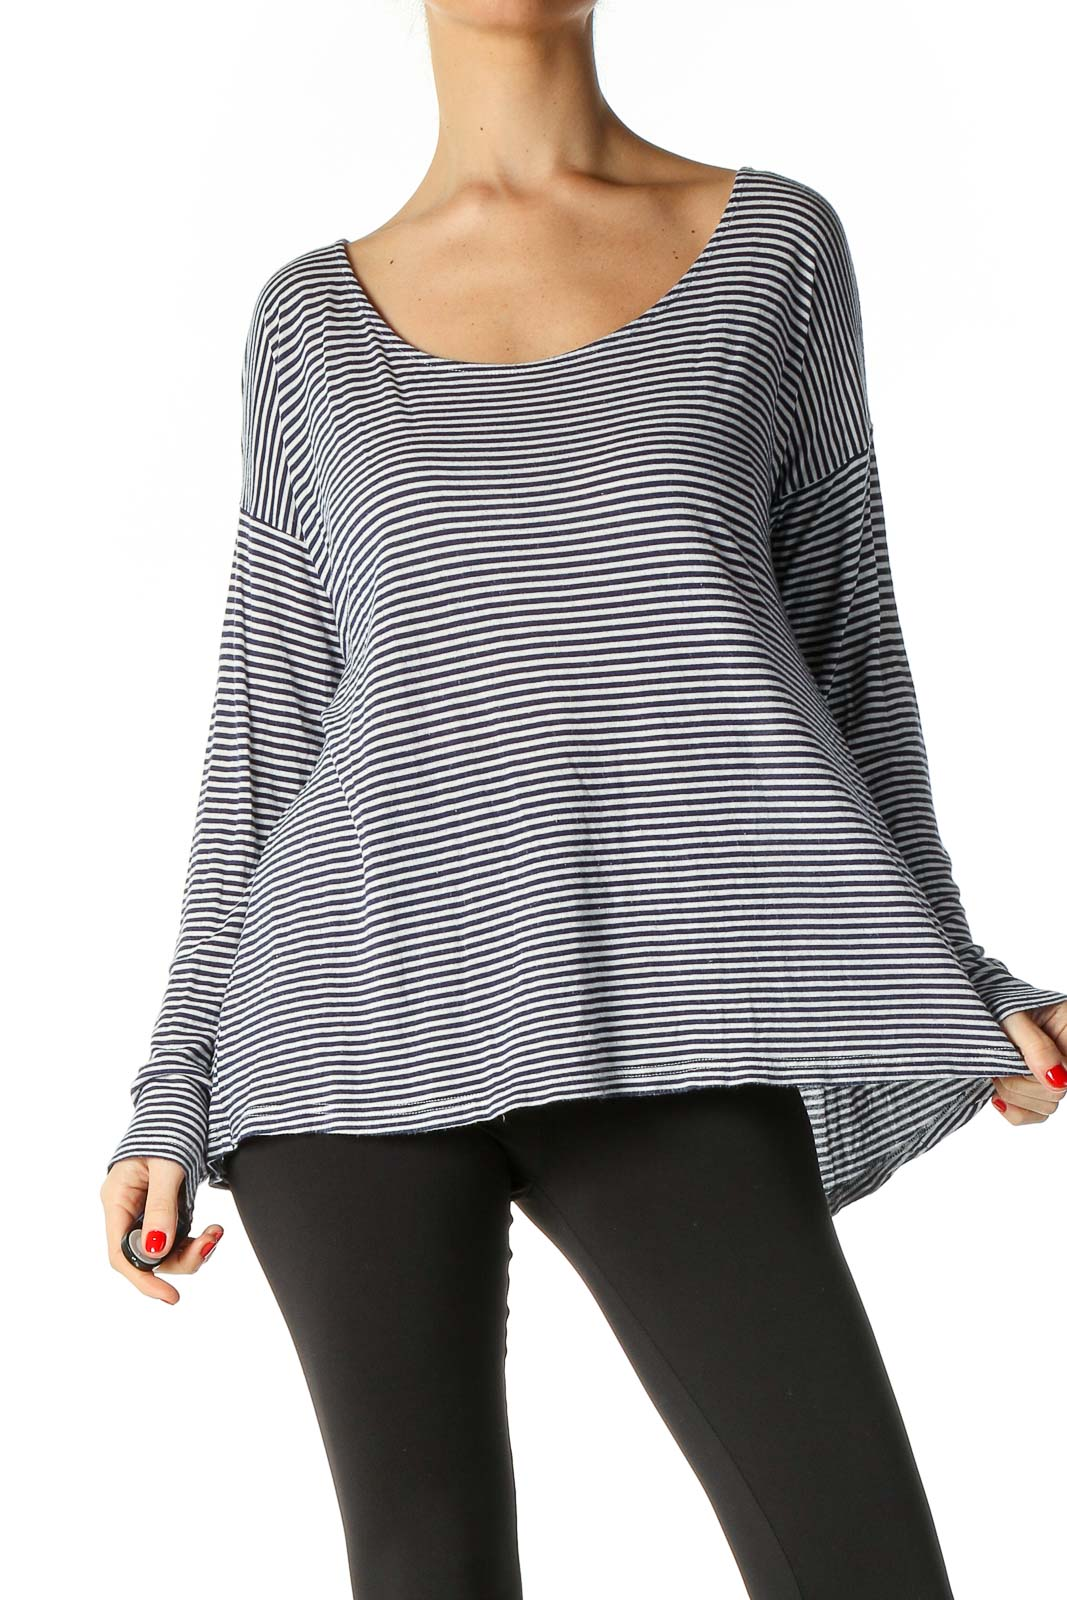 Blue Striped T-Shirt Front